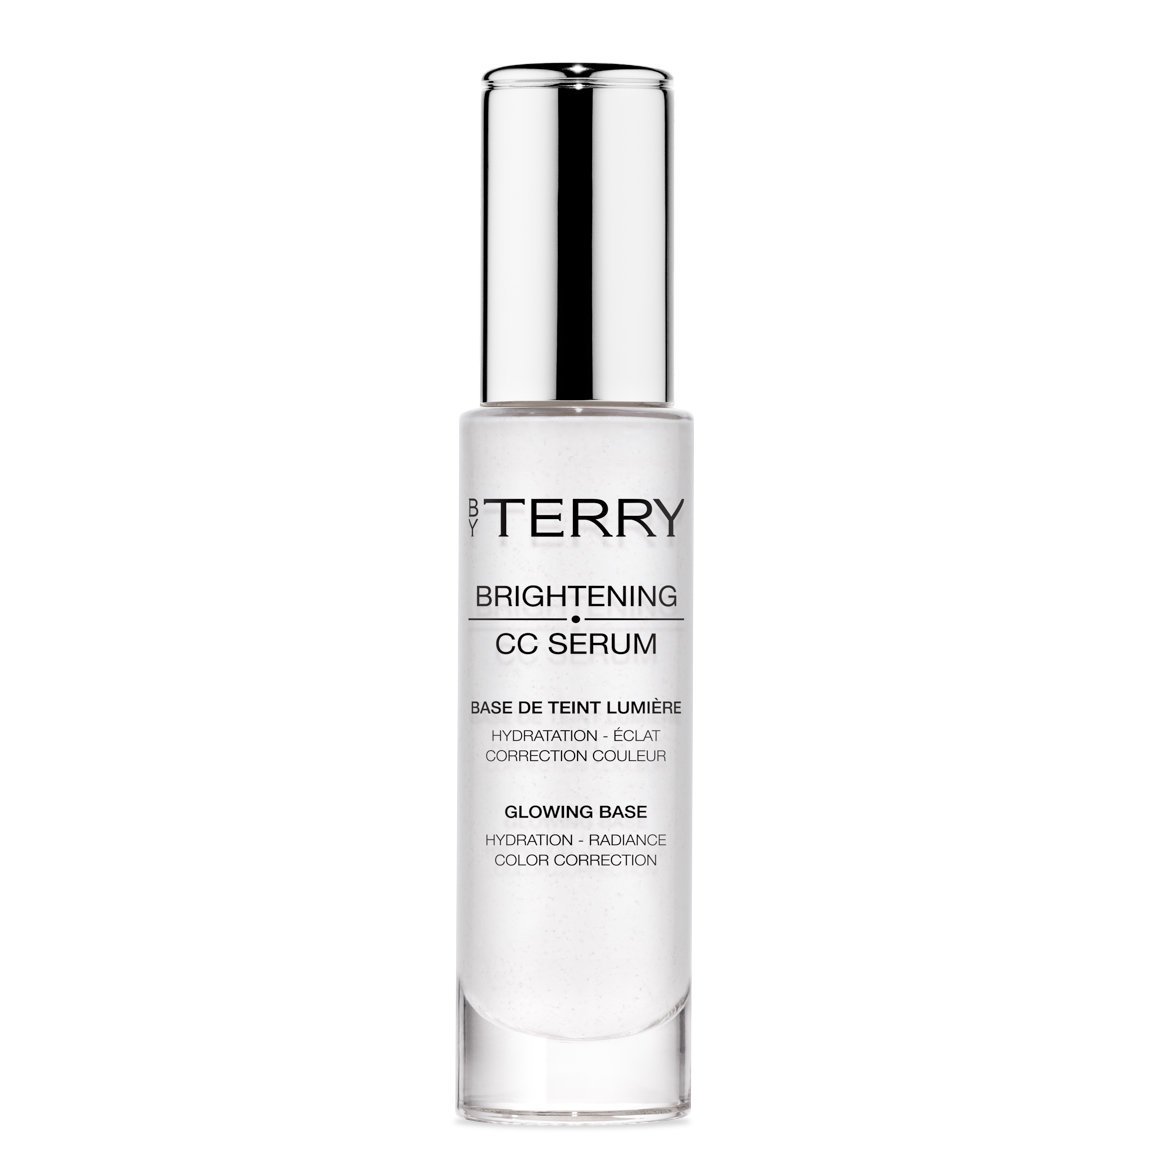 BY TERRY Brightening CC Serum 1 Immaculate Light alternative view 1.